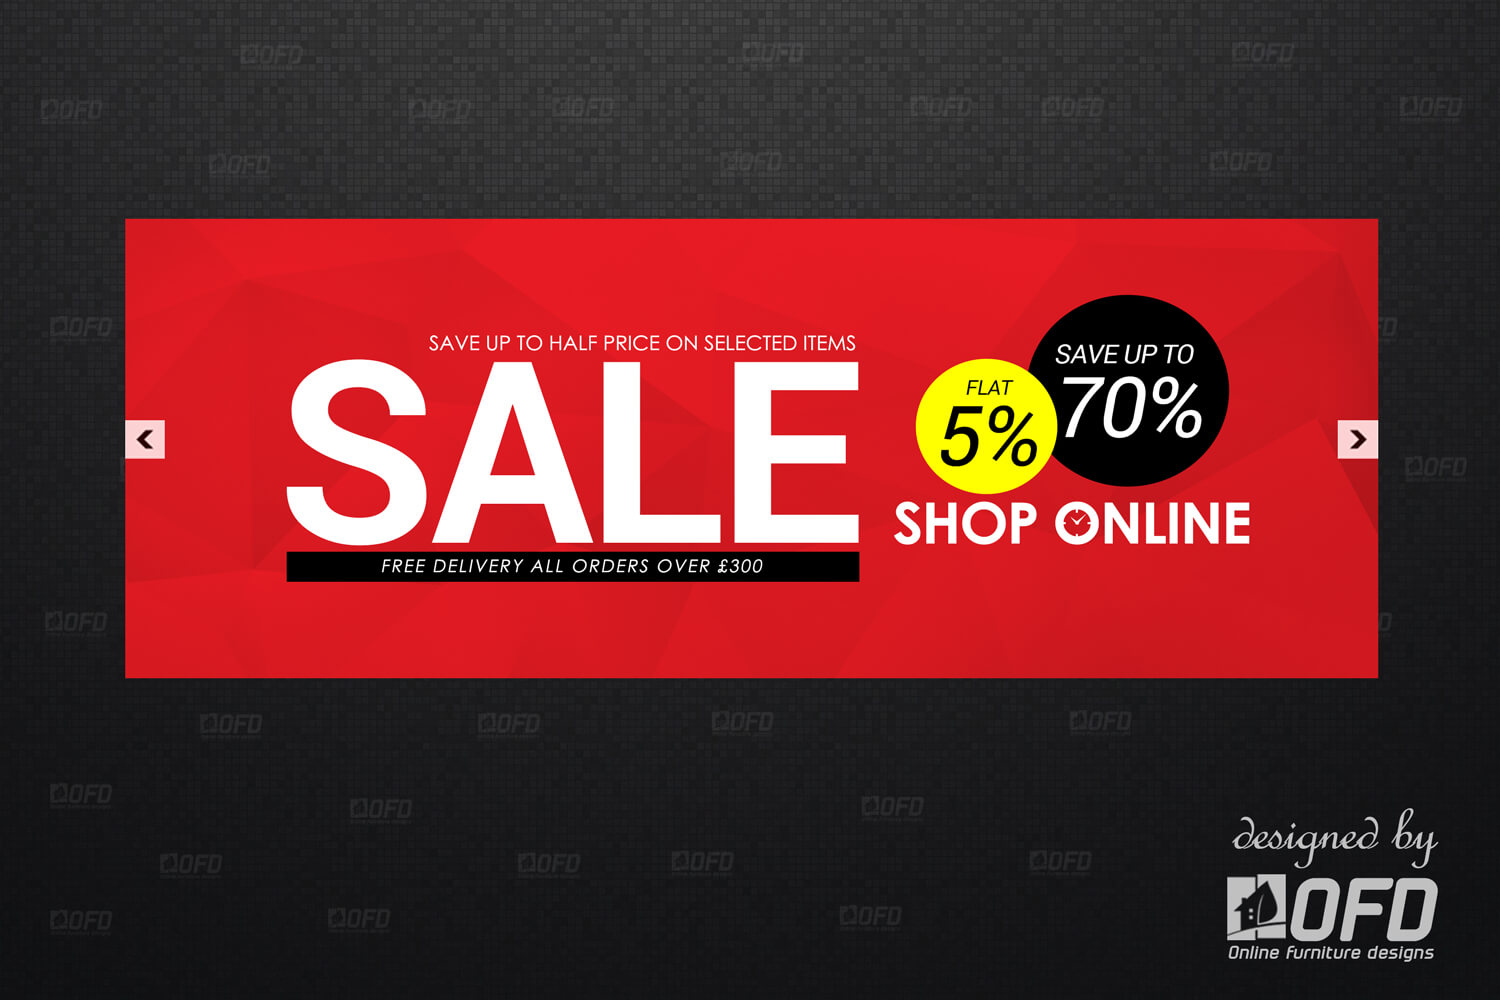 Now Big Saving on Big Brand Furniture Shop Online